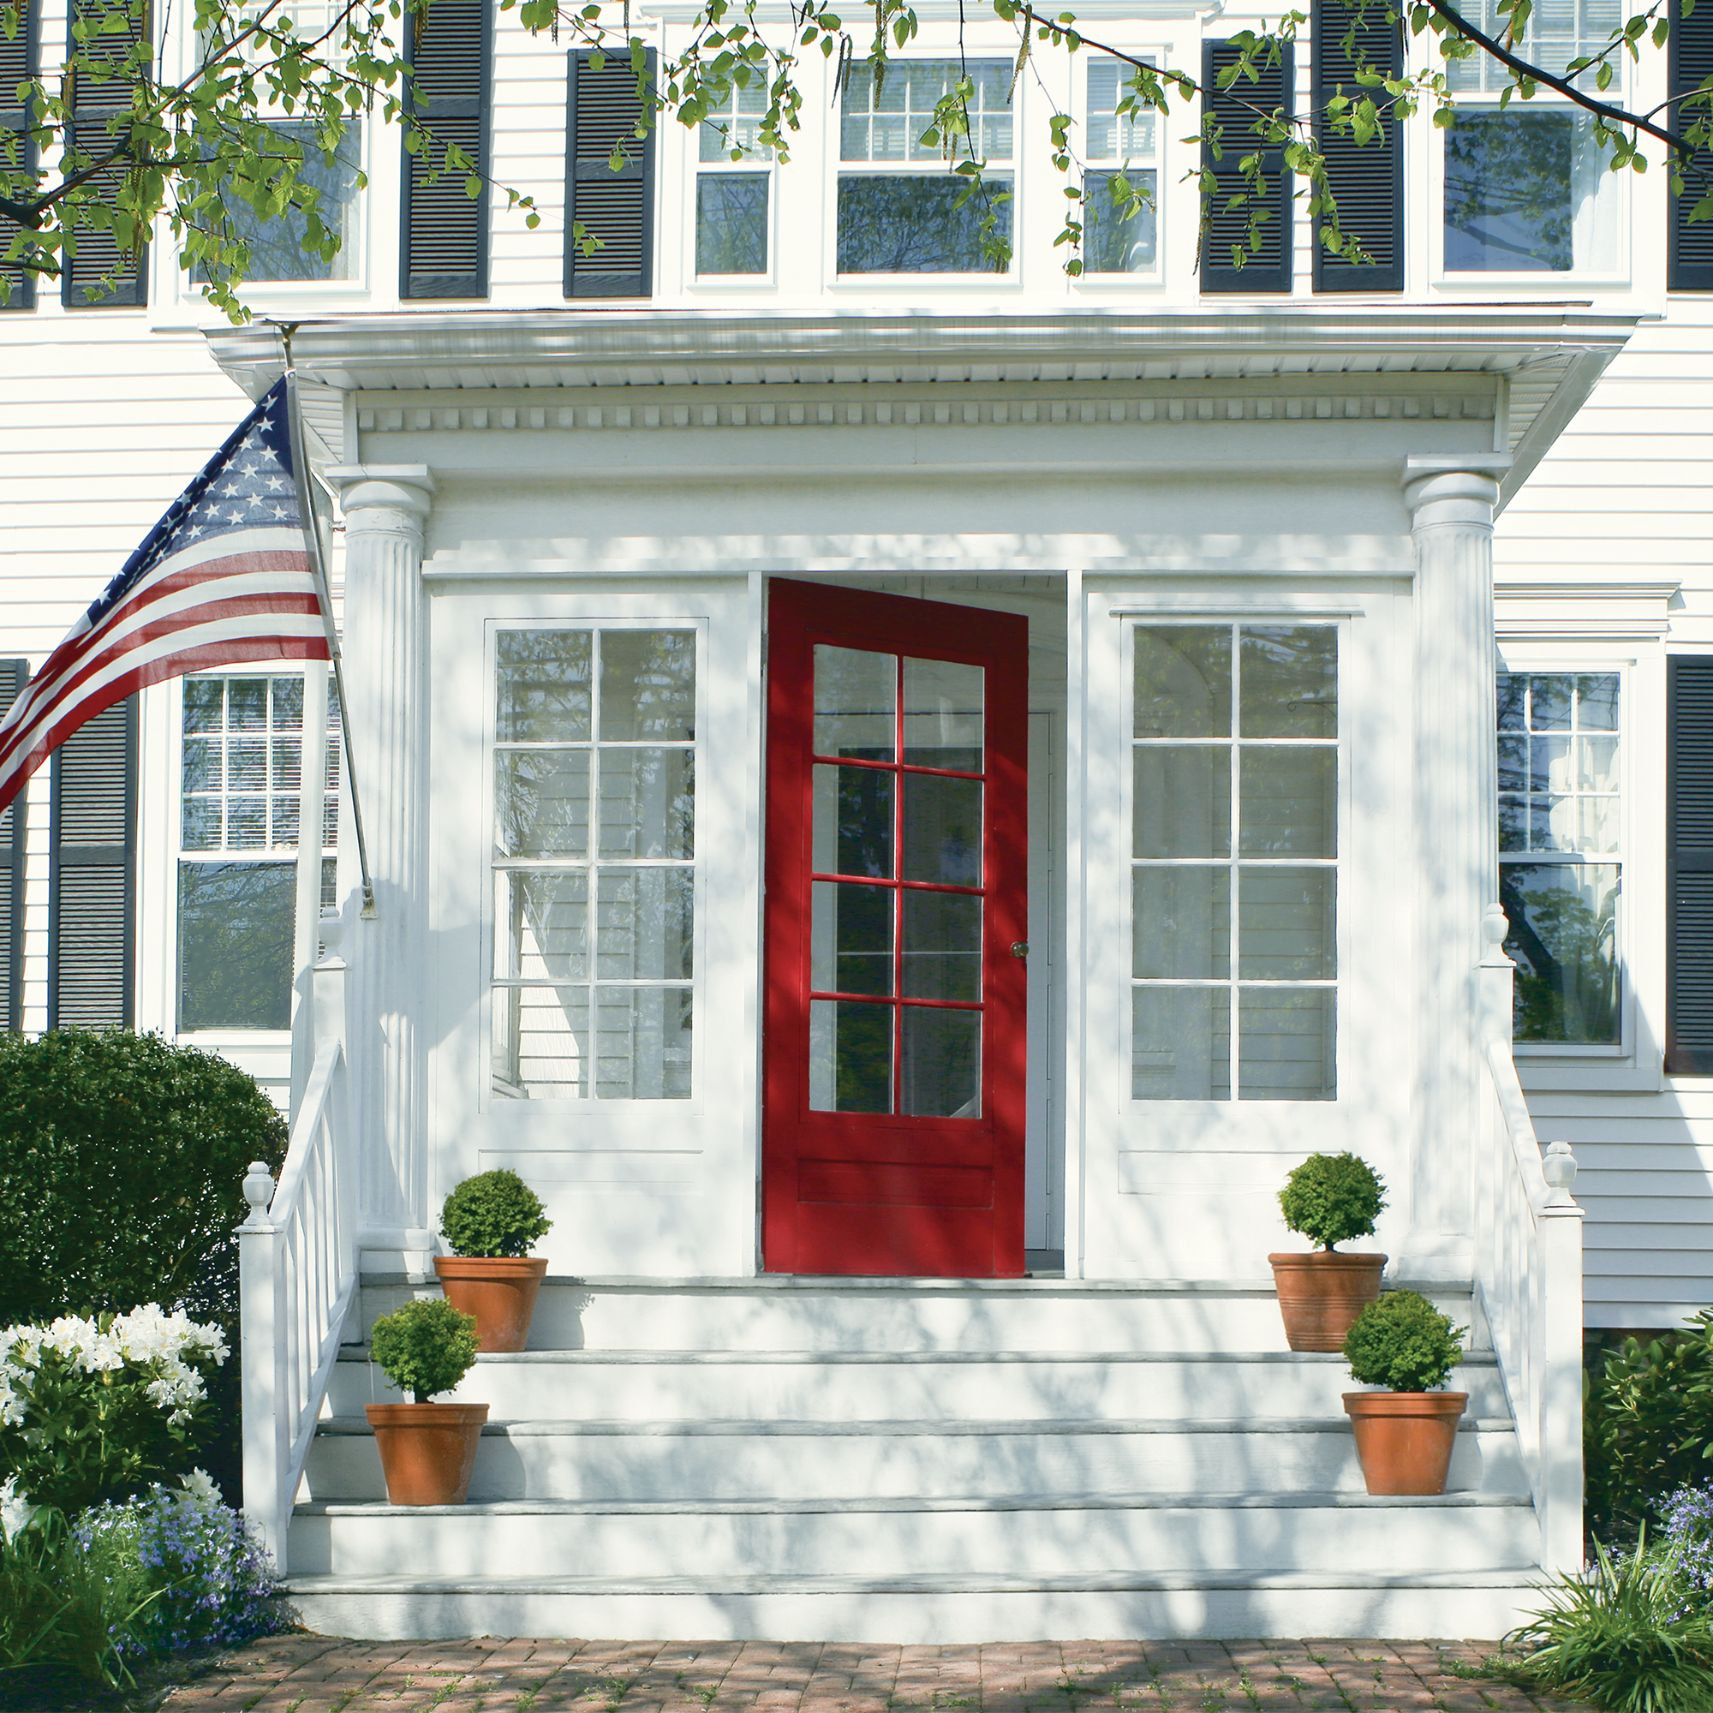 Coral Door with American Flag